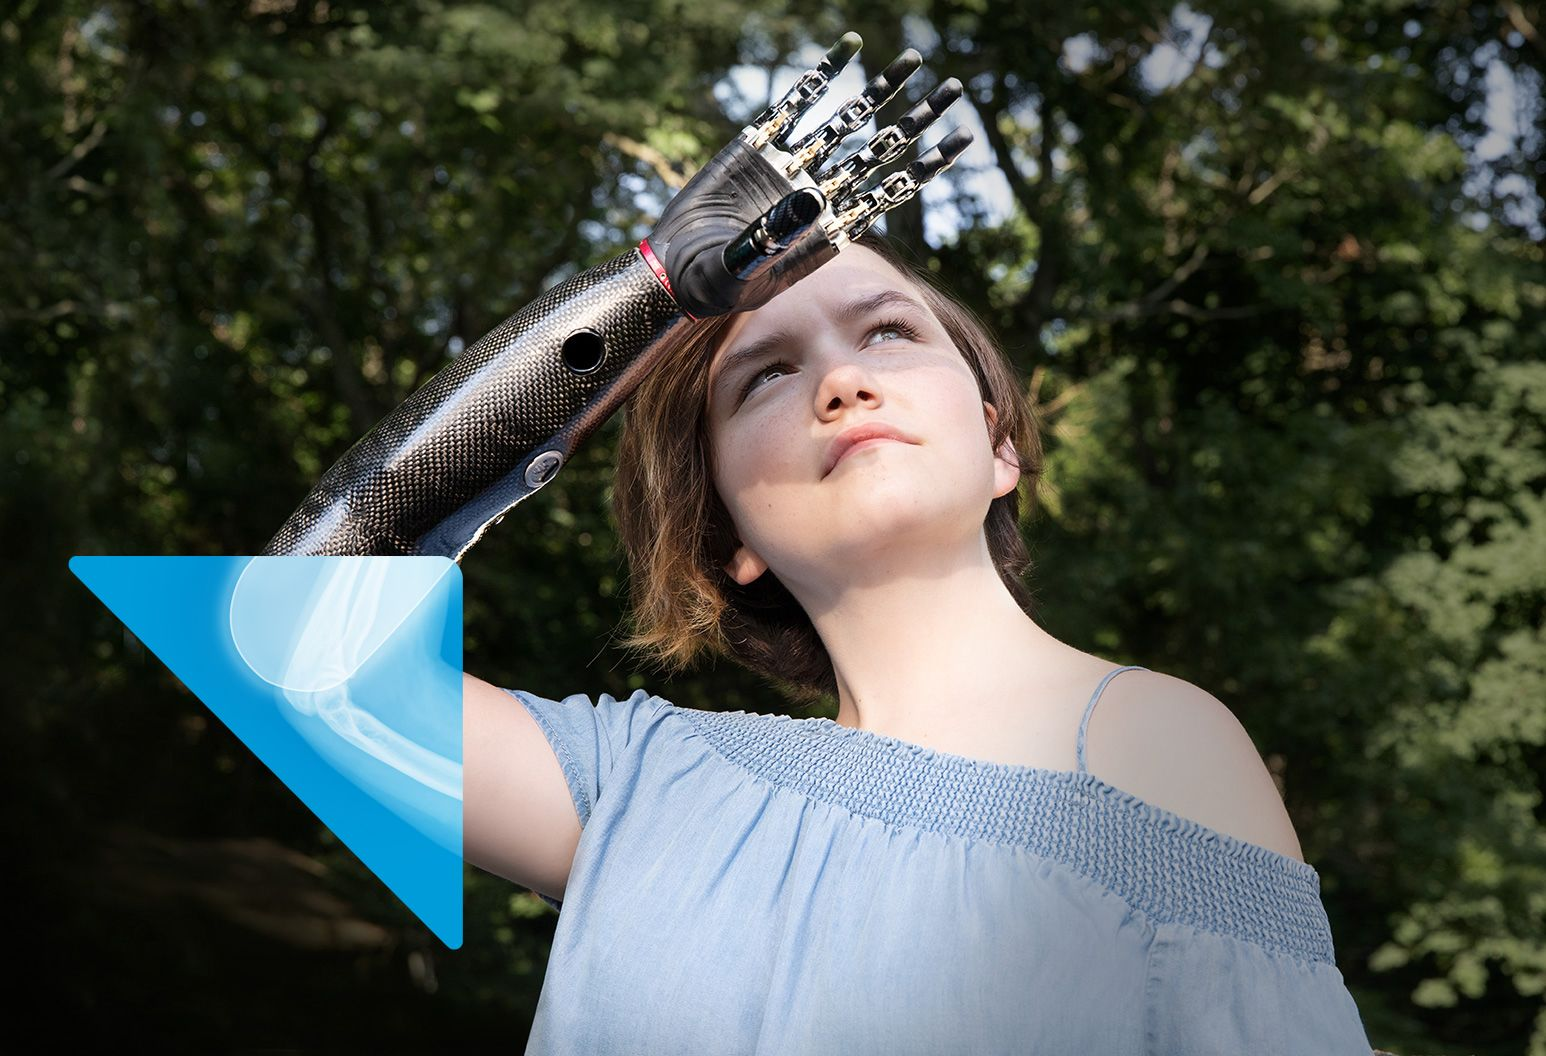 A girl with a prosthetic arm raised above her forehead standing with a background of trees